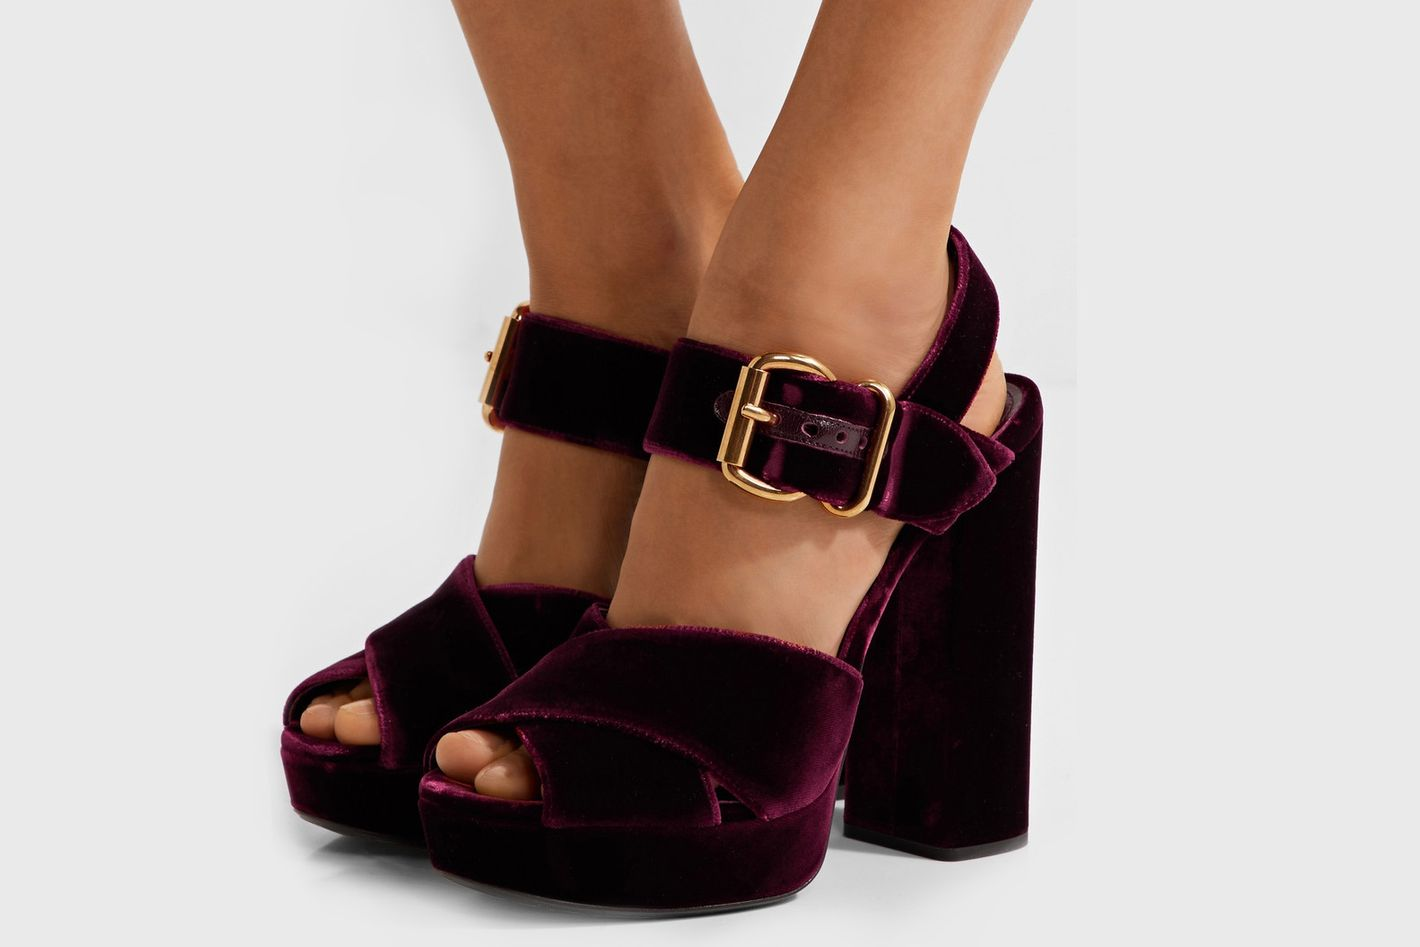 The Purple Prada Platforms I Can t Stop Dreaming About 836e23c92